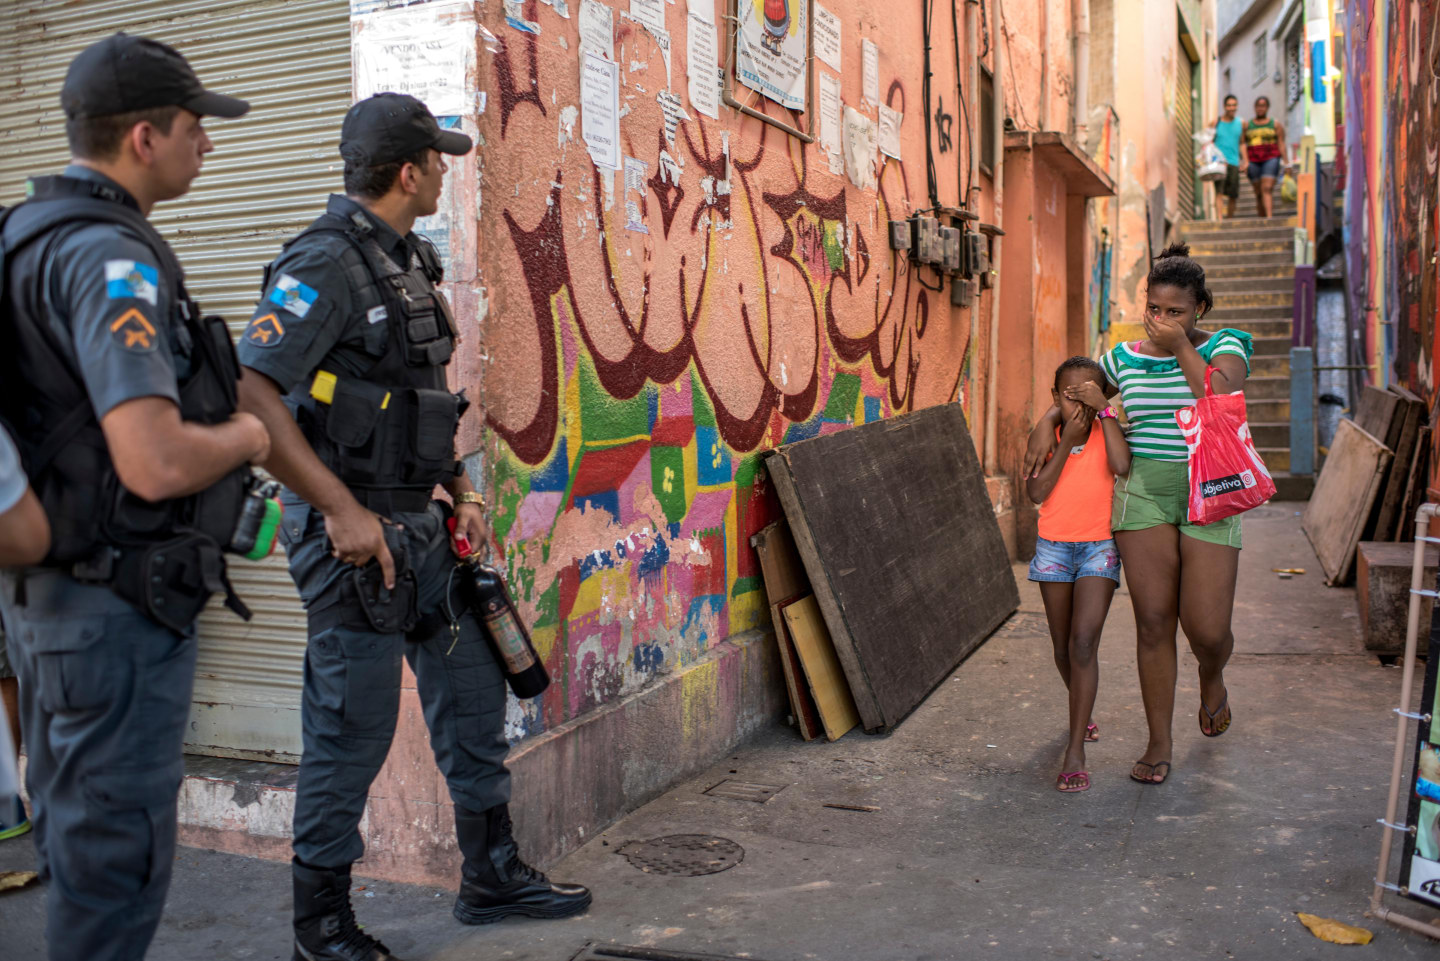 These Poignant Photographs Document Real Life In Rio De Janeiro